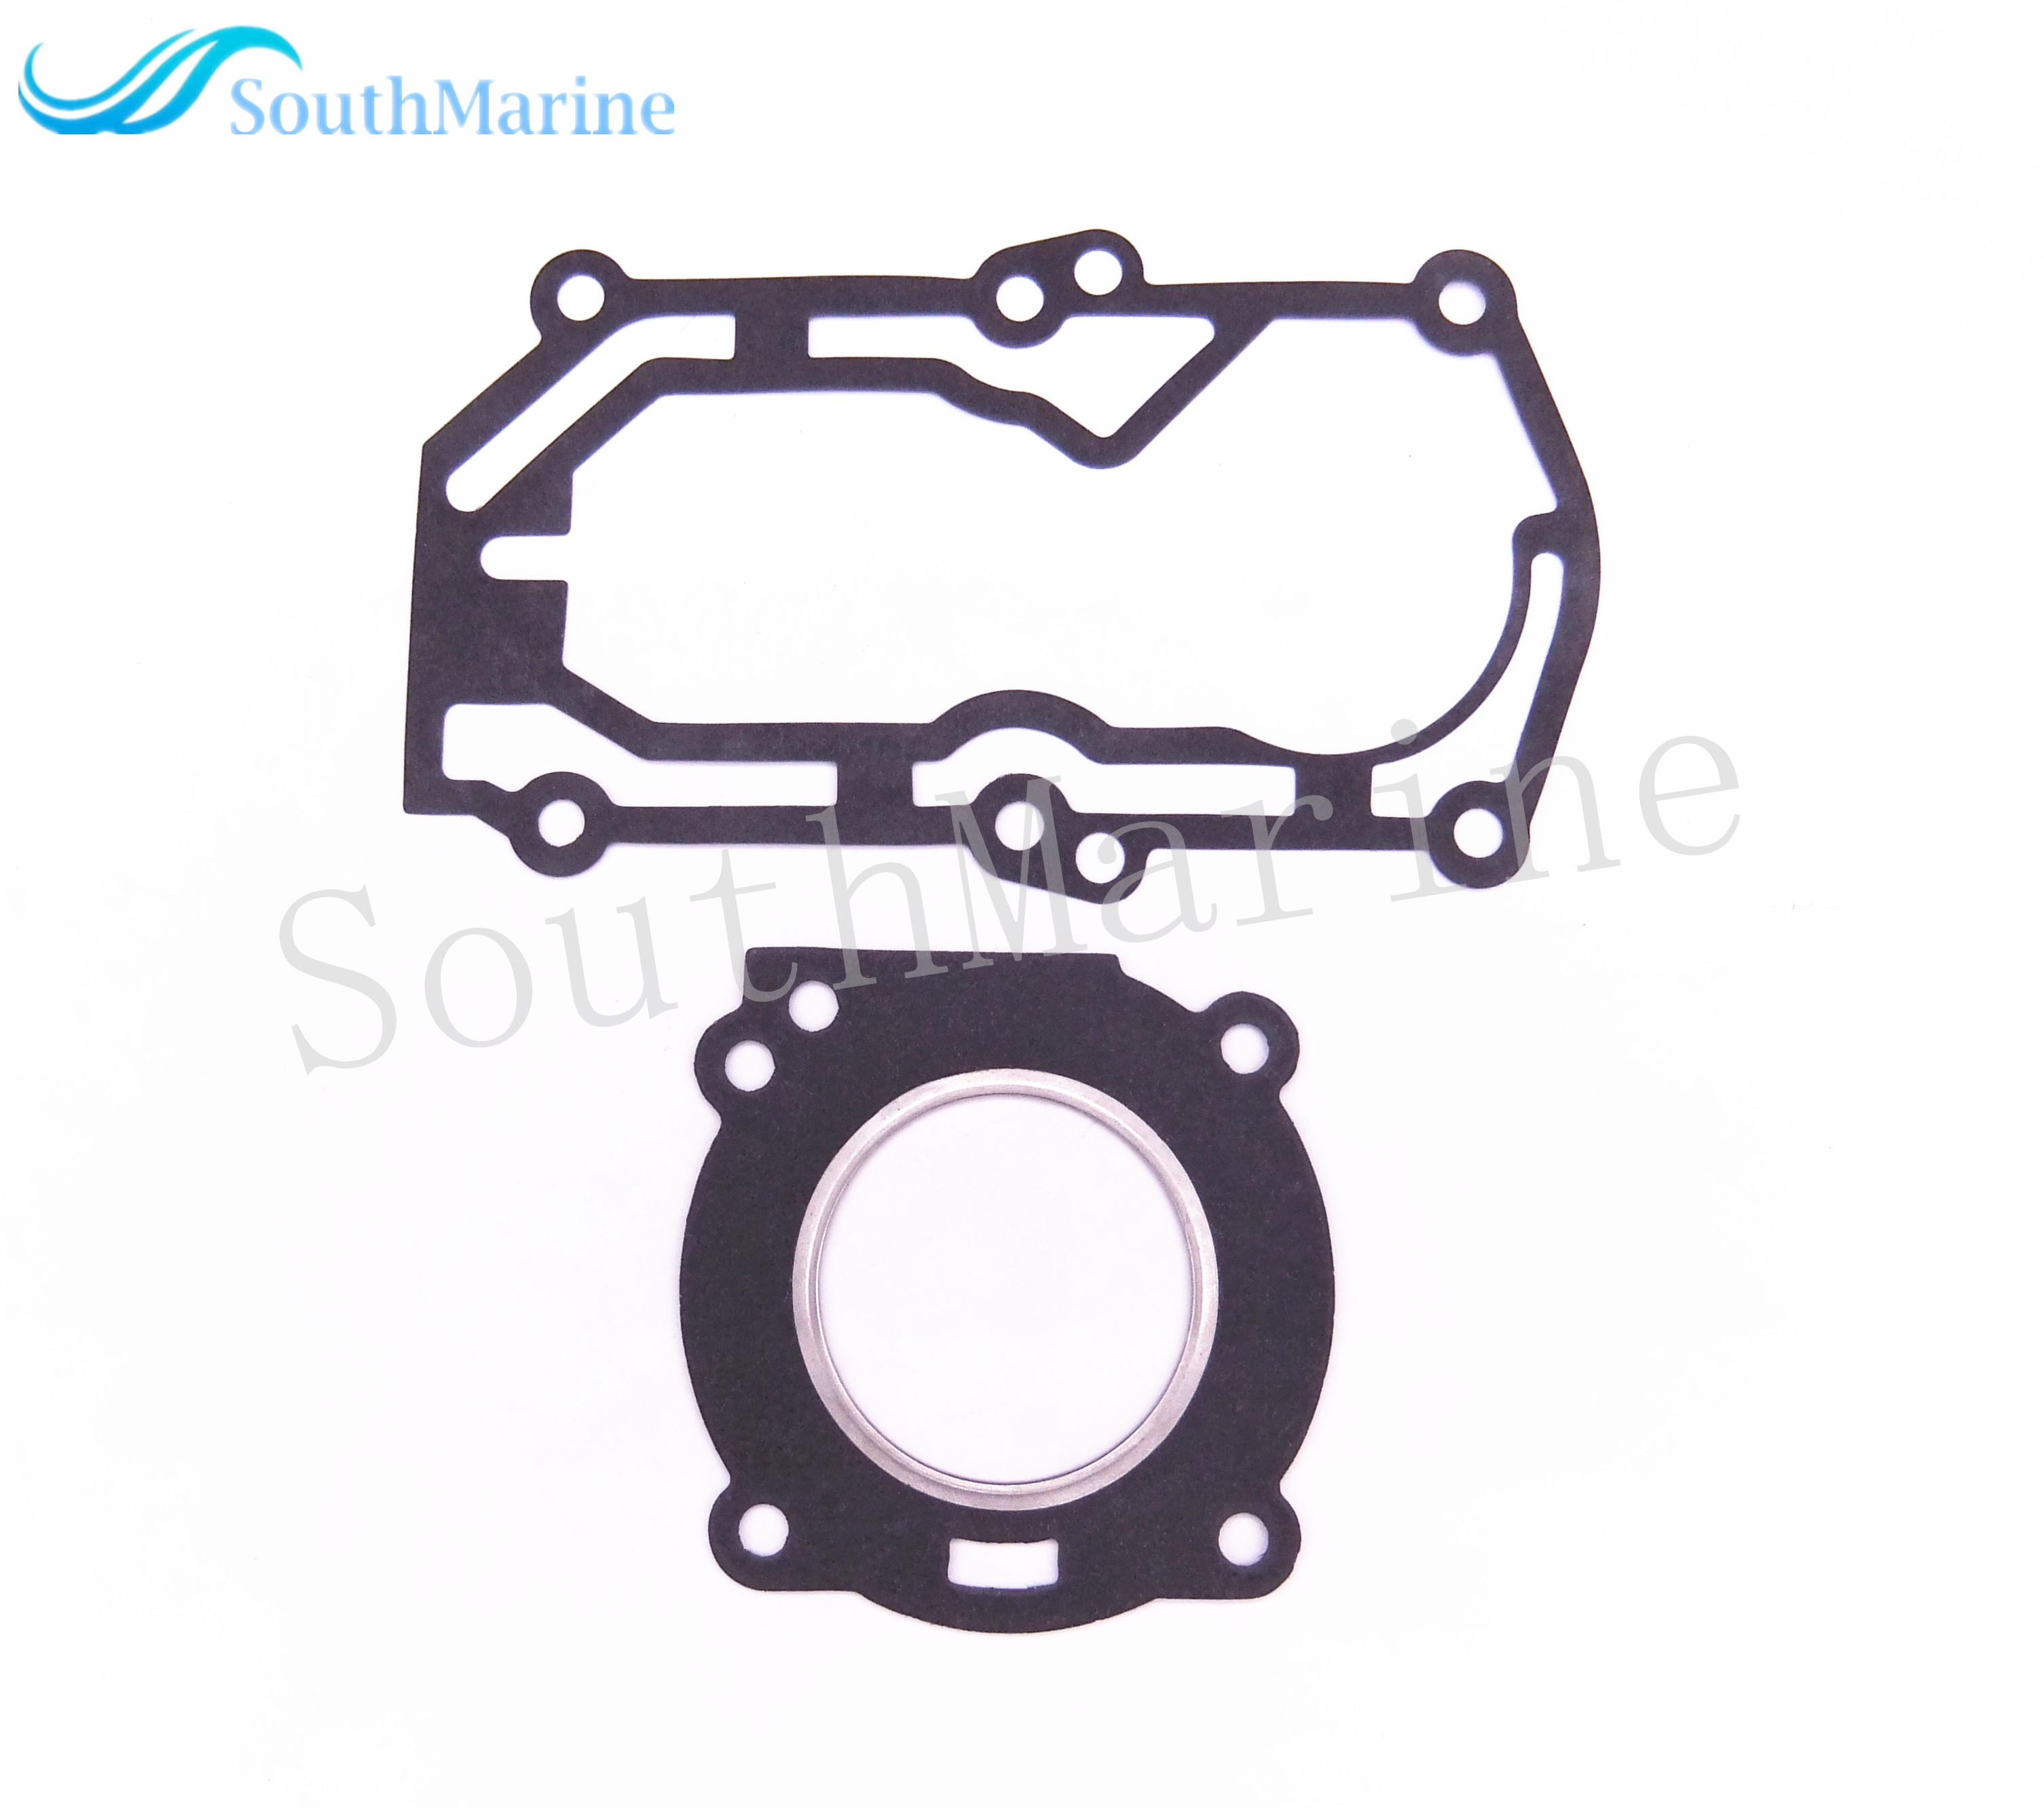 Boat Motor Complete Power Head Seal Gasket Kit for Tohatsu Nissan 2.5HP 3.5HP Outboard Engine